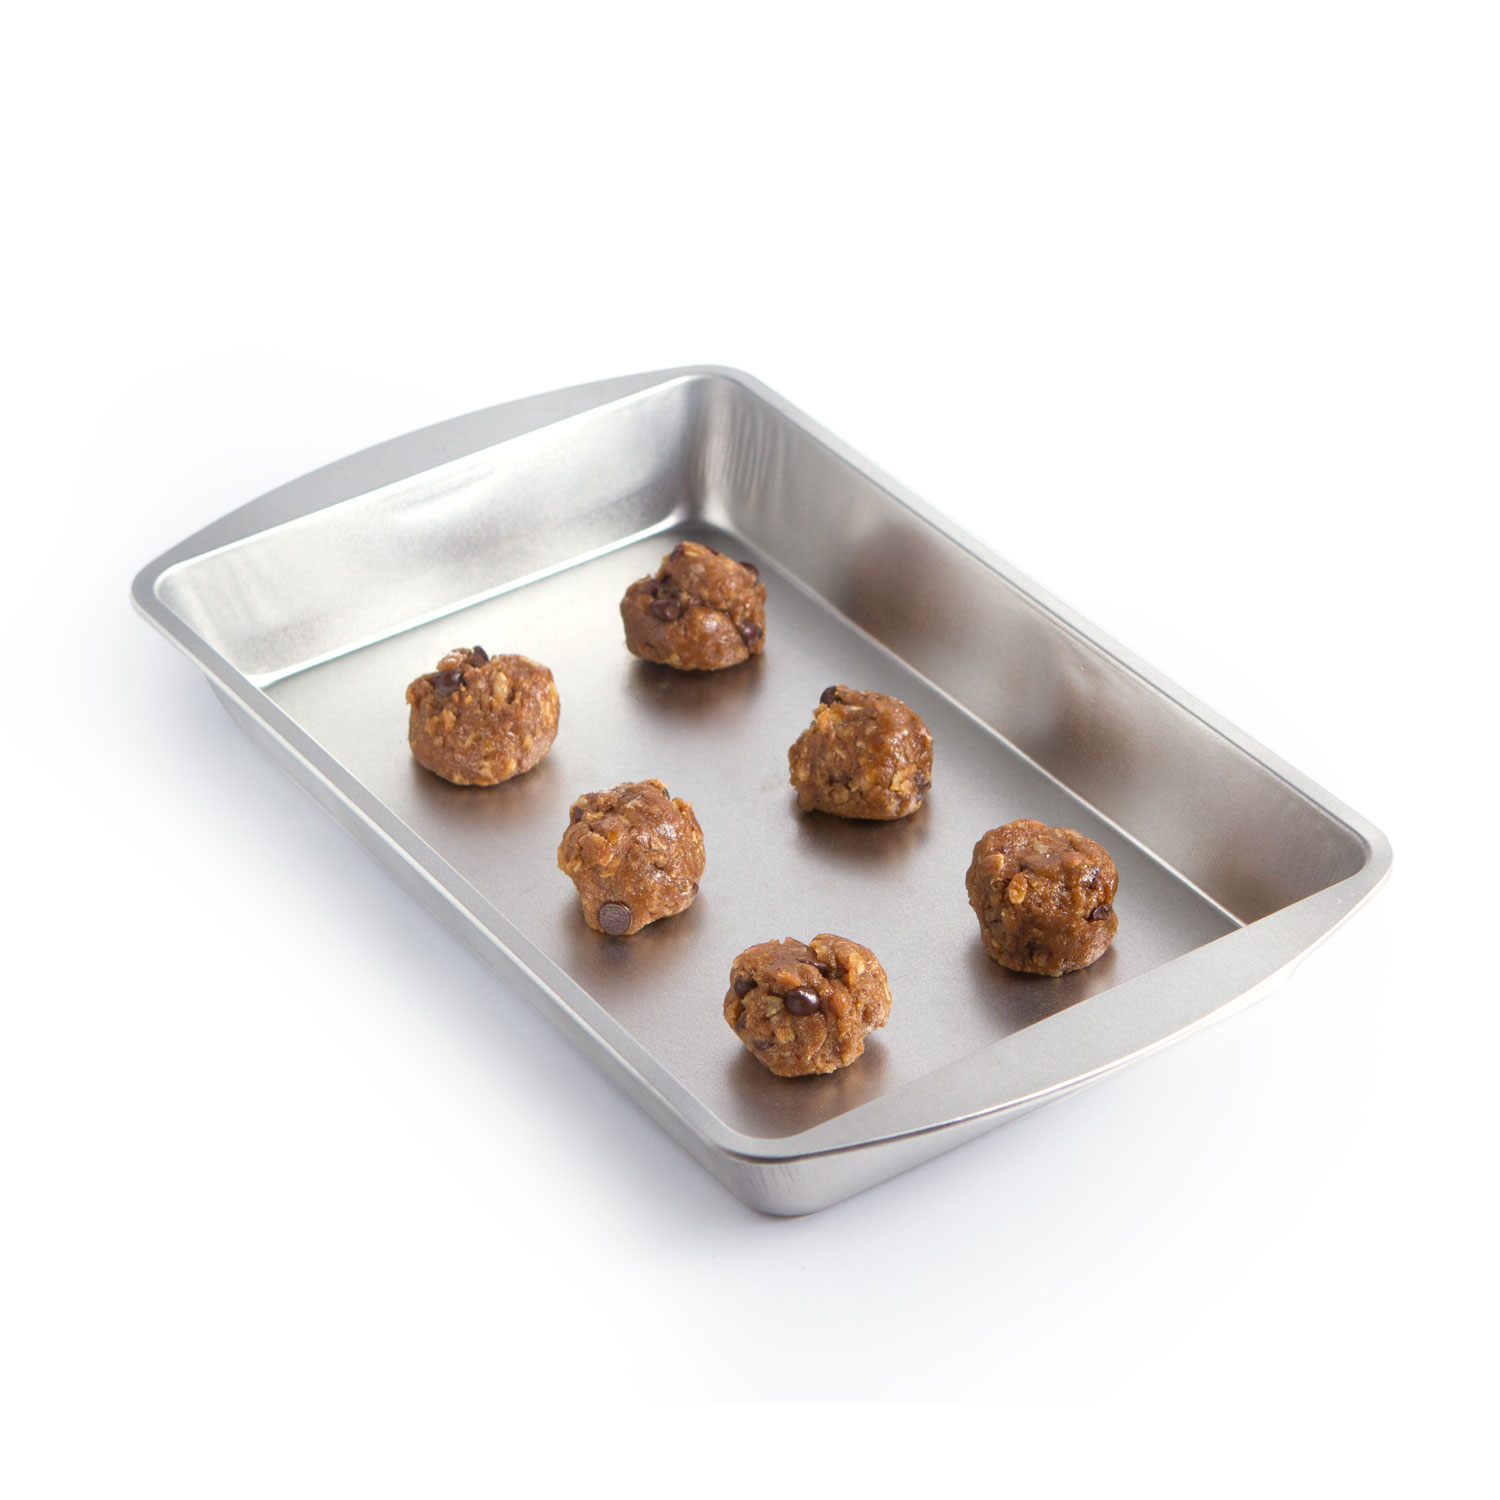 SFTE GF Chocolate Chip Cookie Dough in tray